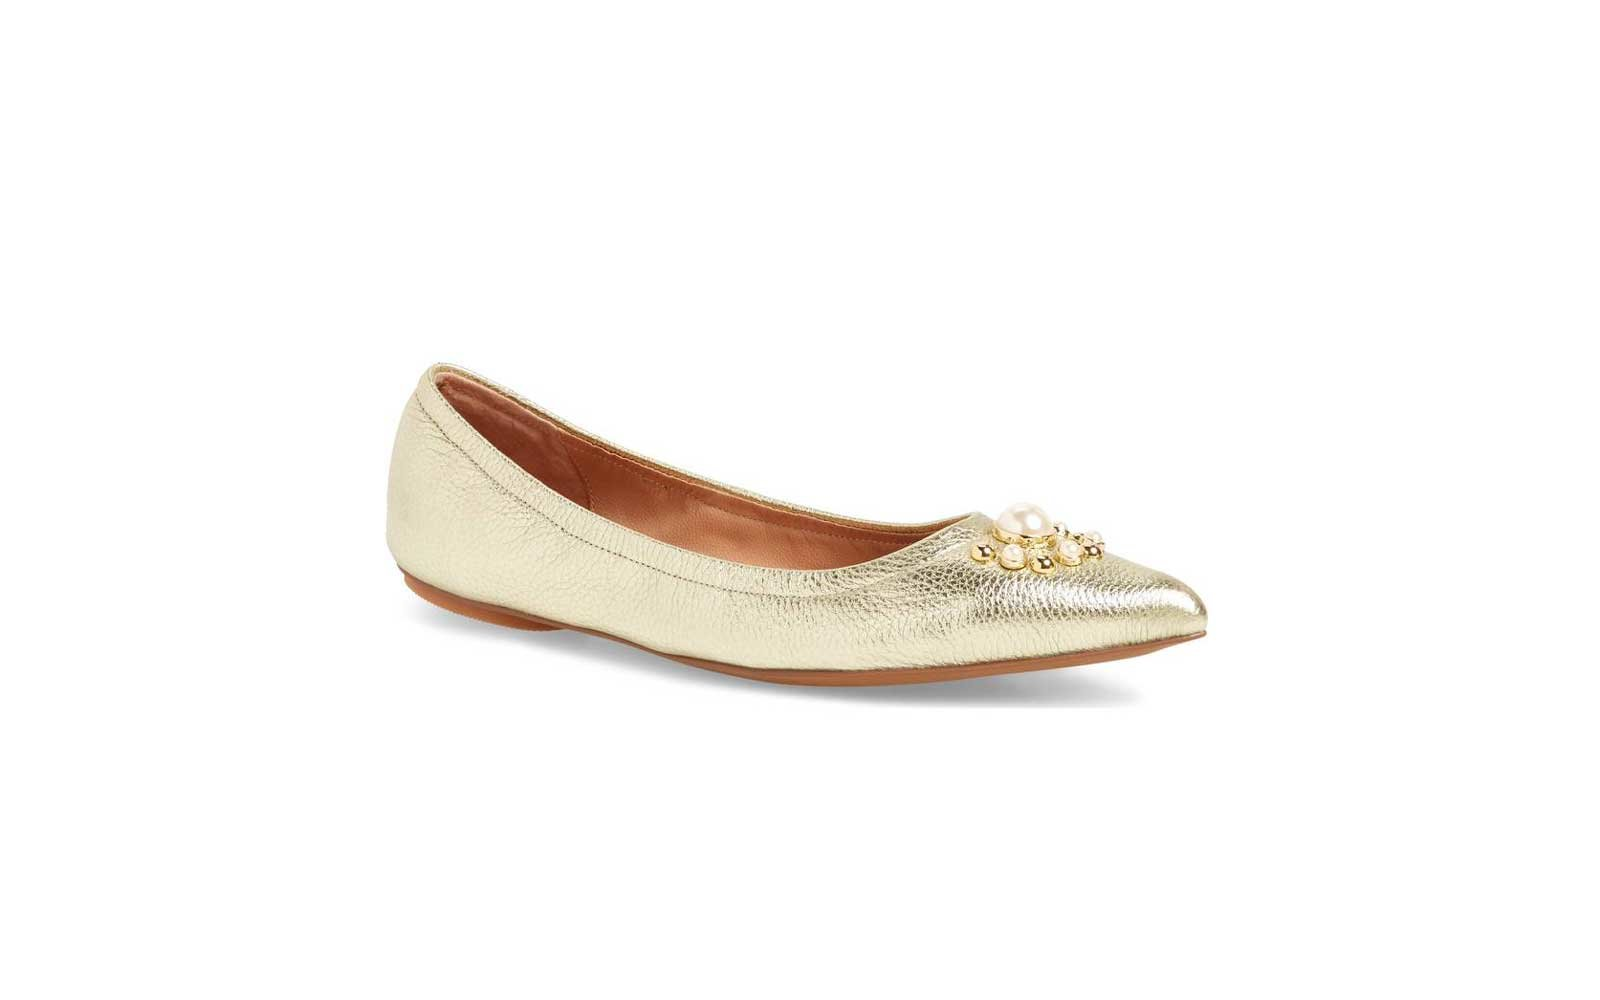 Linea Paolo Nadia Embellished Flat in Gold Leather